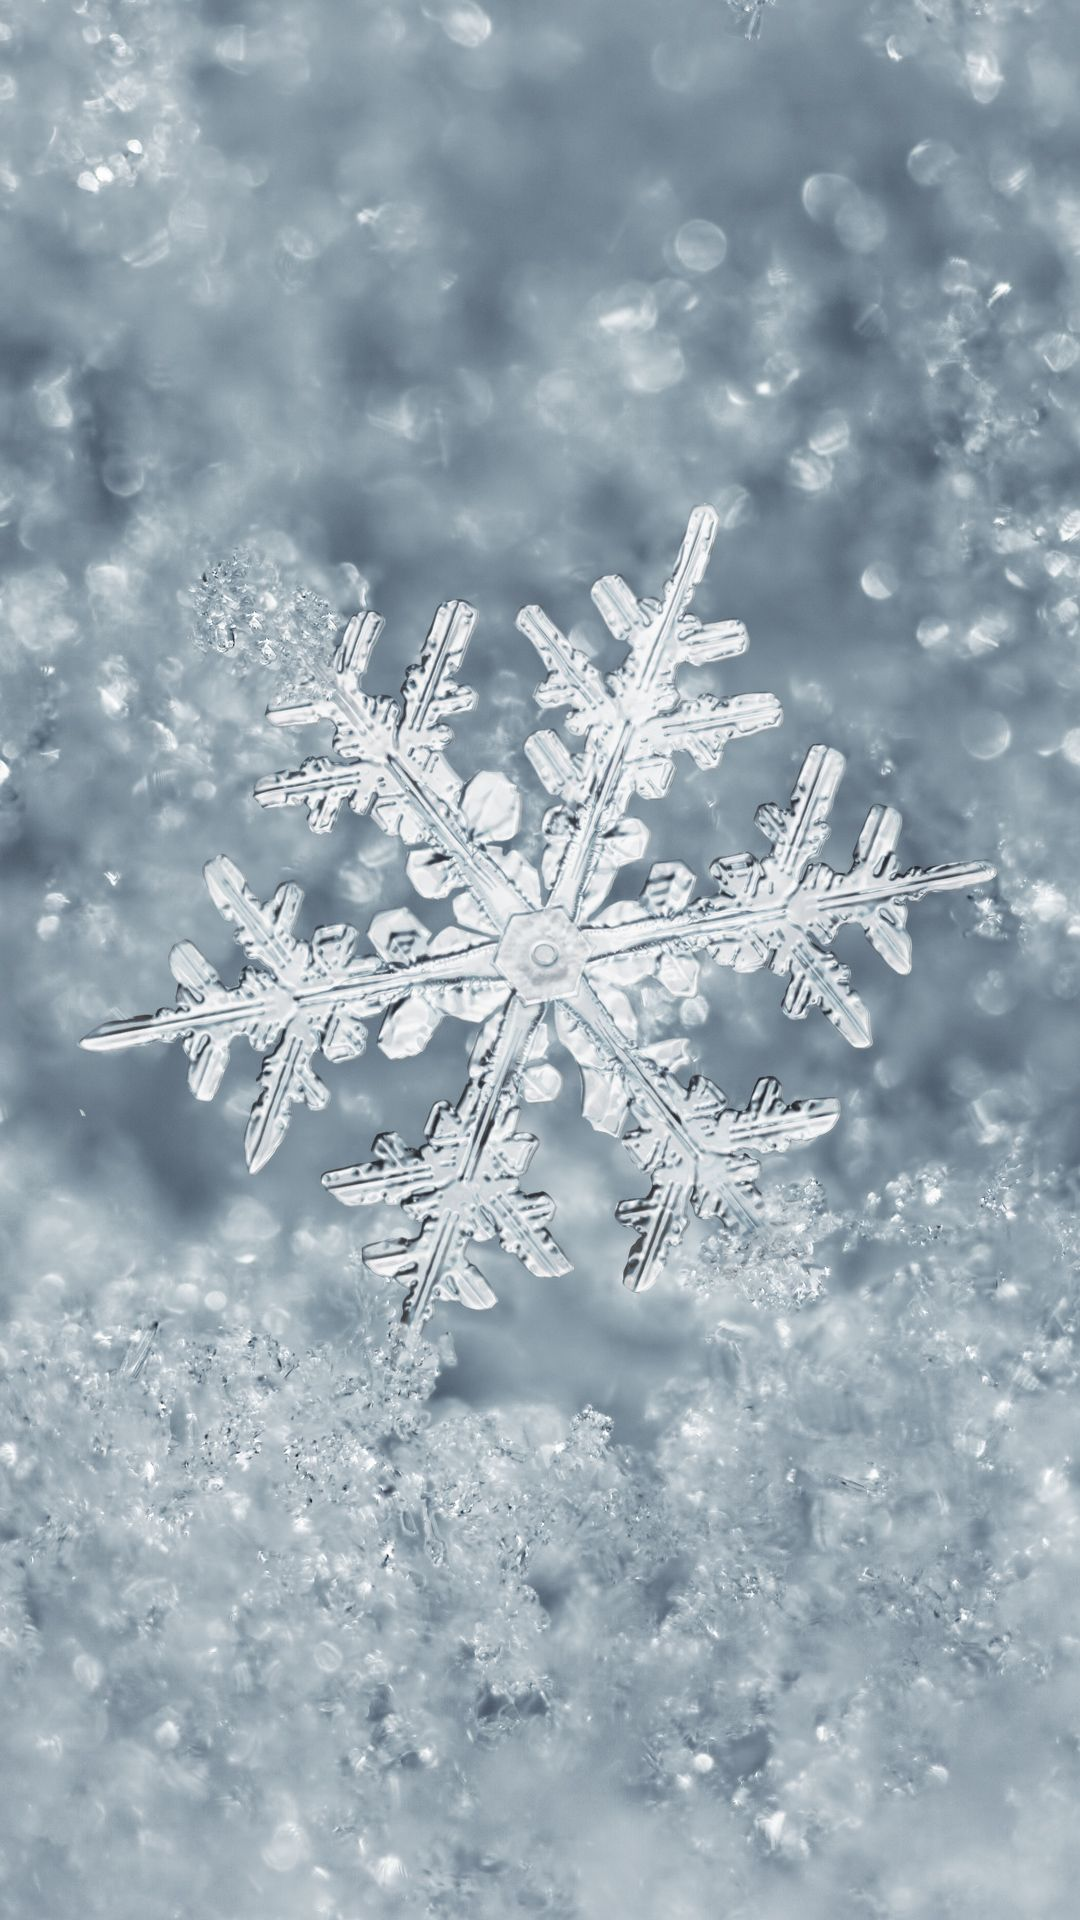 Ice Snowflake iPhone 7 Plus Wallpaper Iphone wallpaper